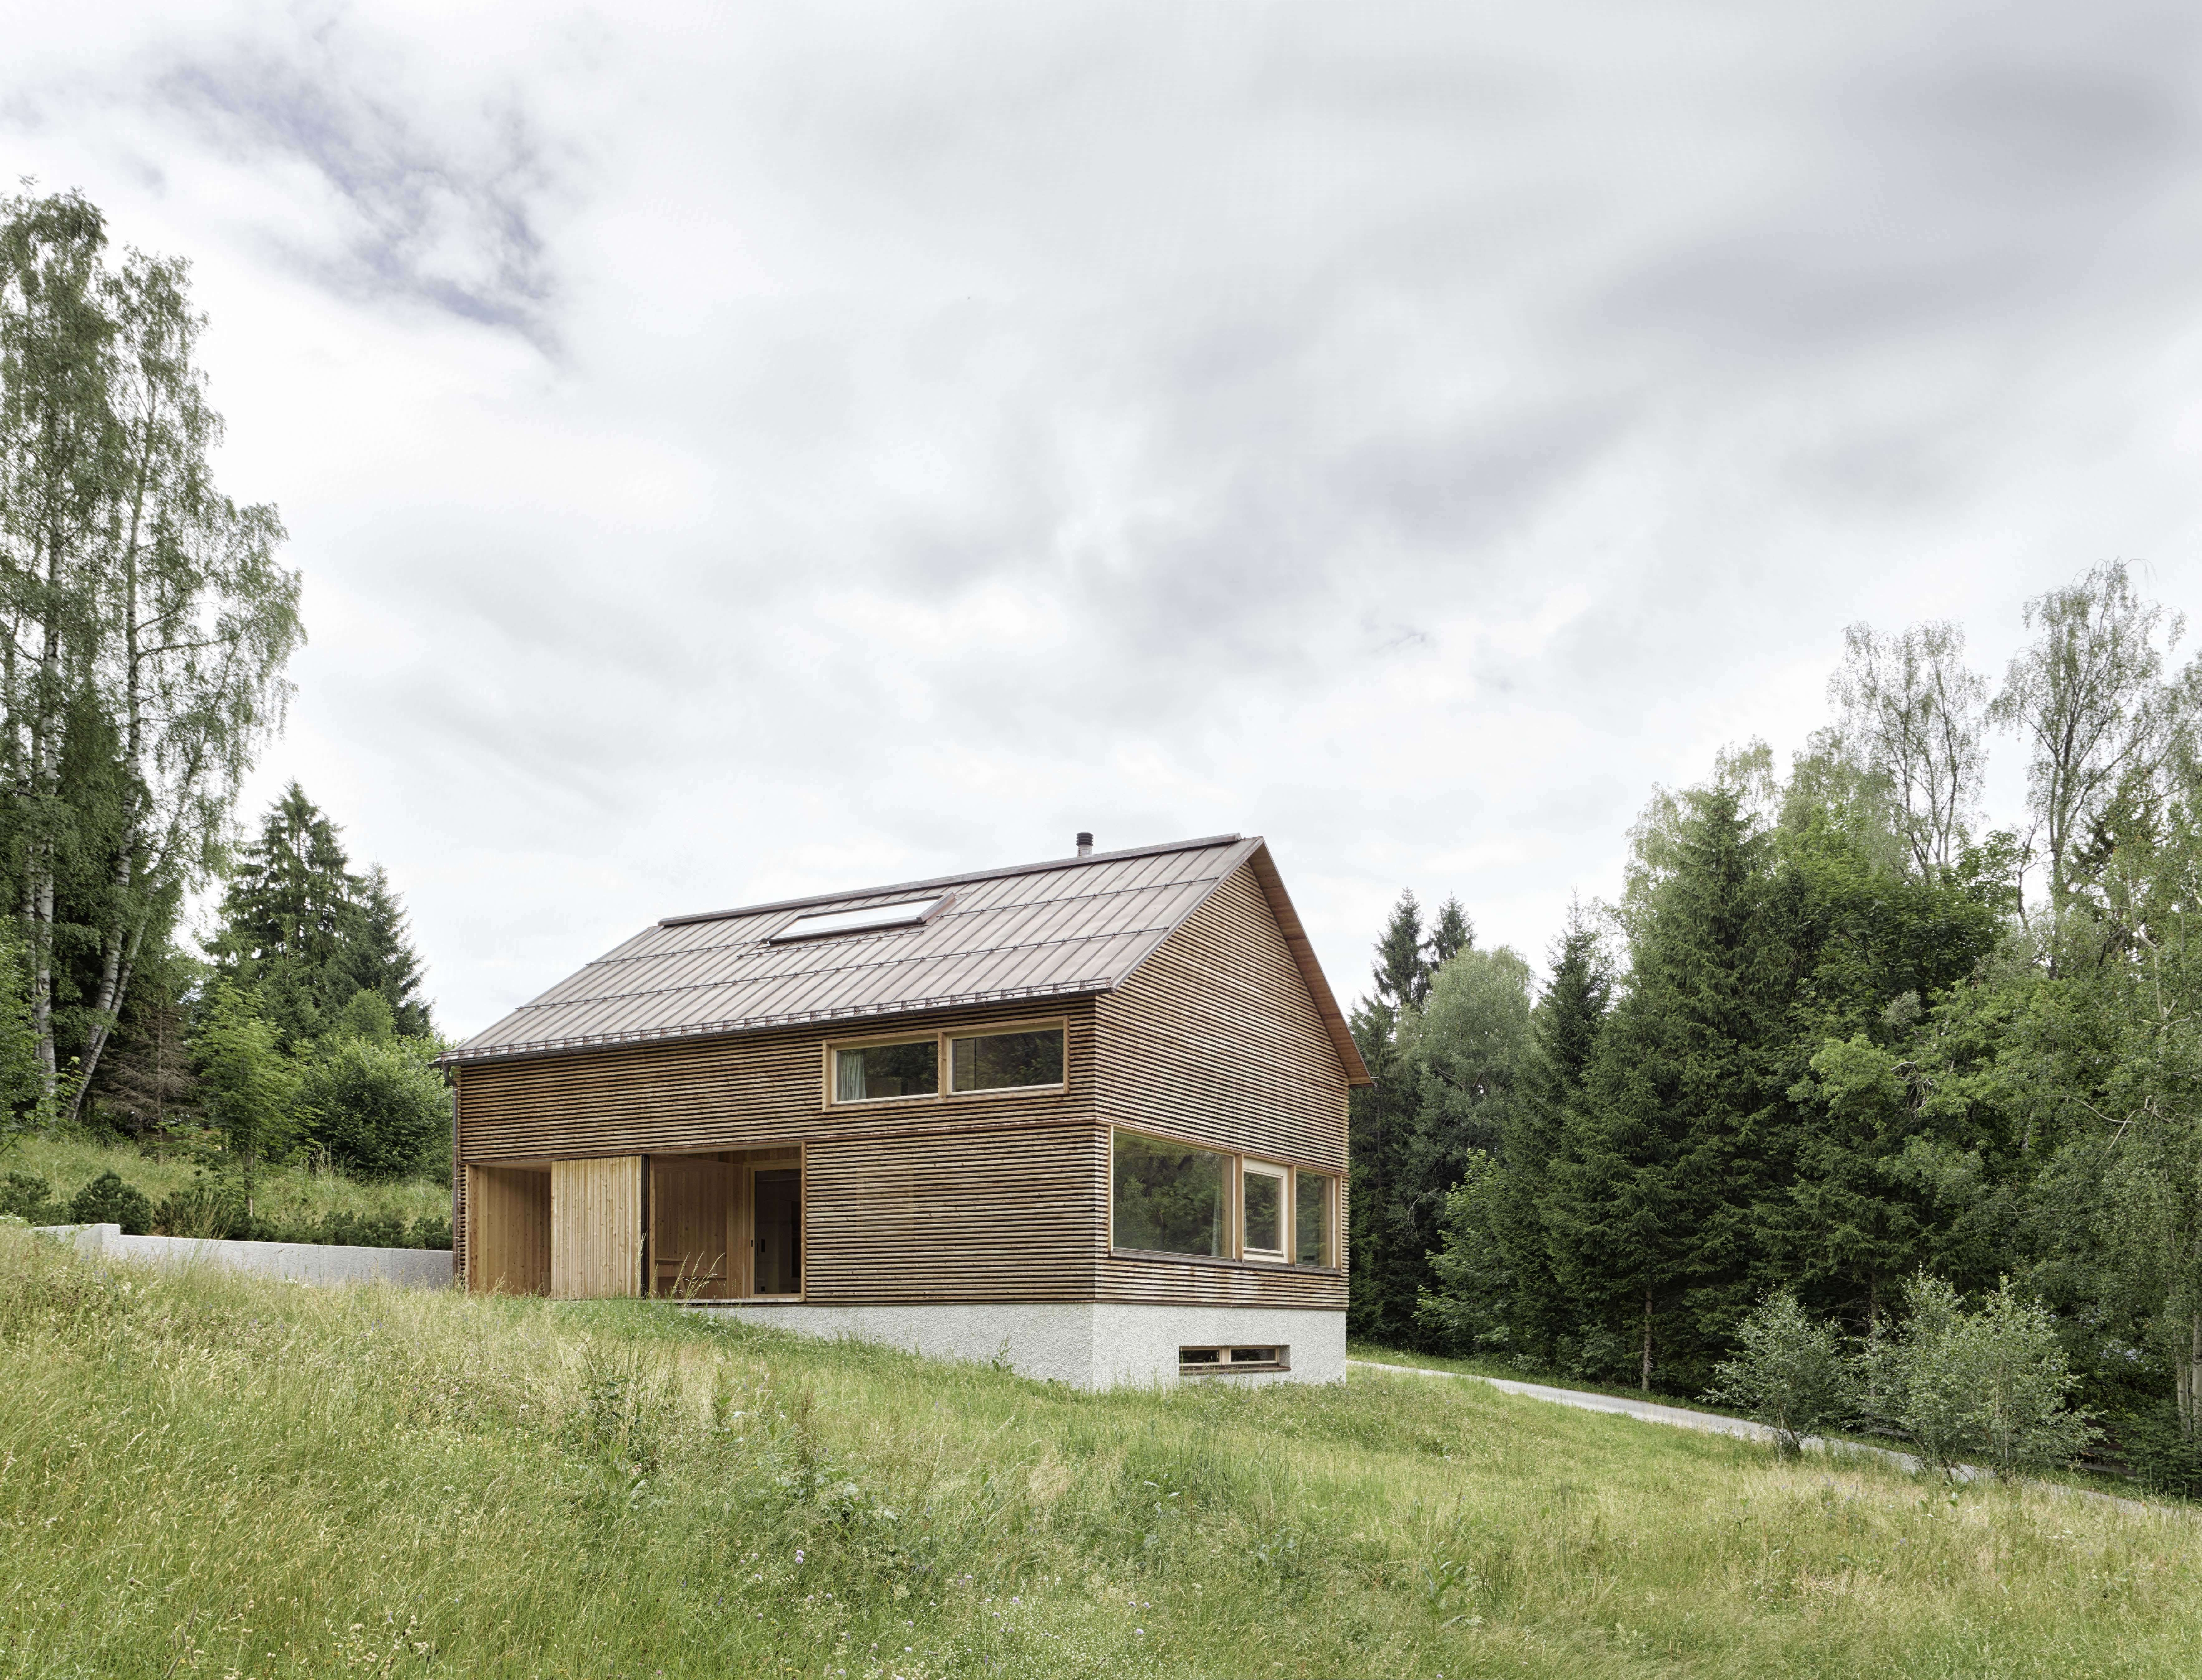 Innauer Matt Architekten Designed The House As Simple Wooden Building  Resting Atop A Solid, Reinforced